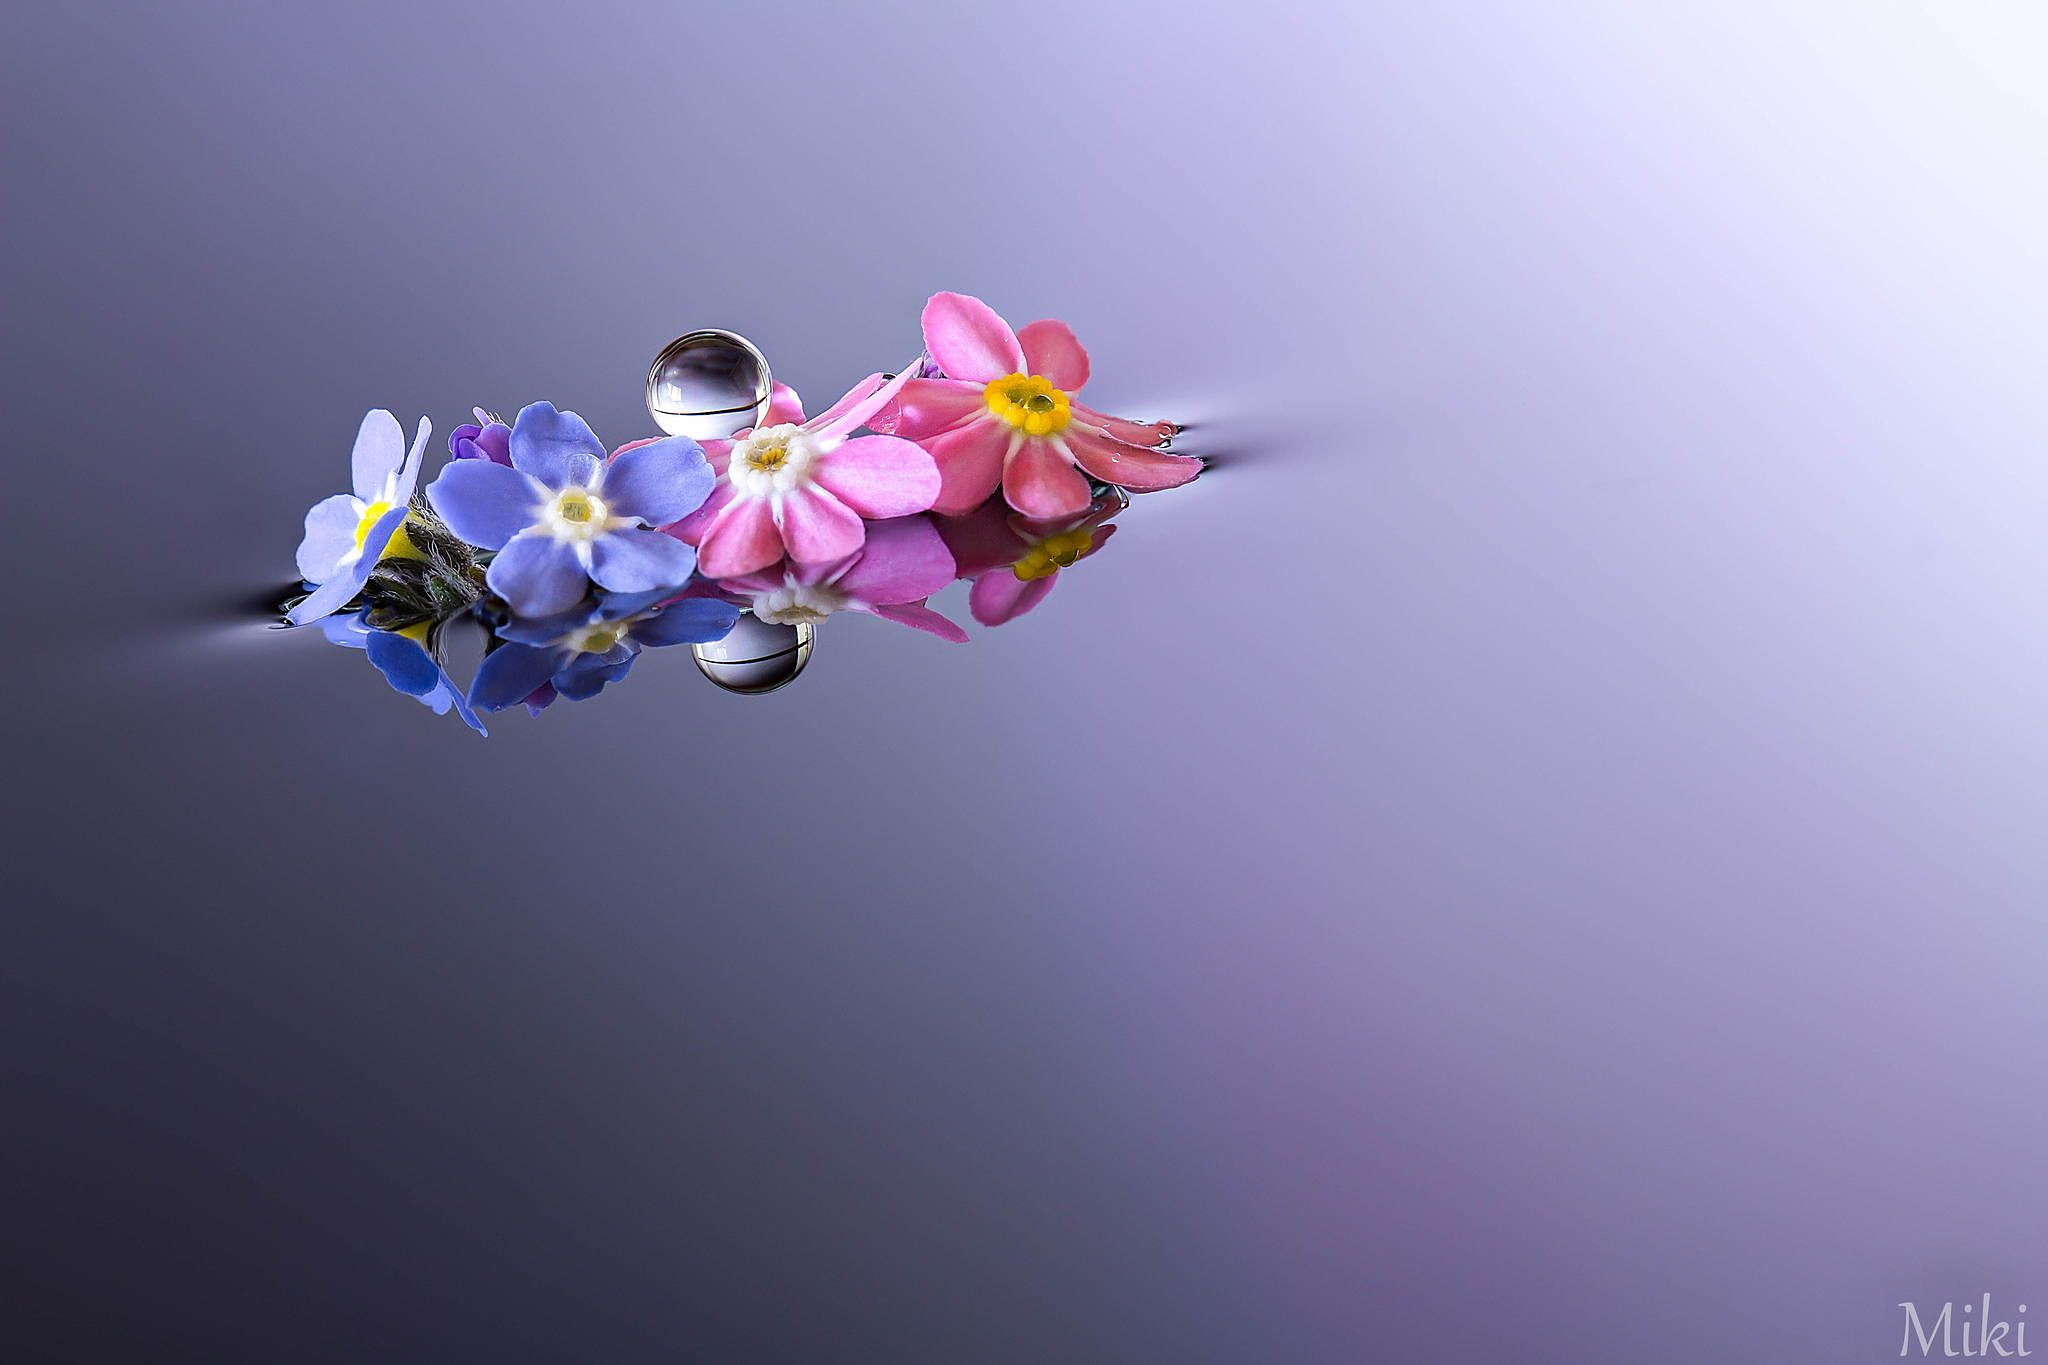 Best Friends Forever by Miki Asai on 500px